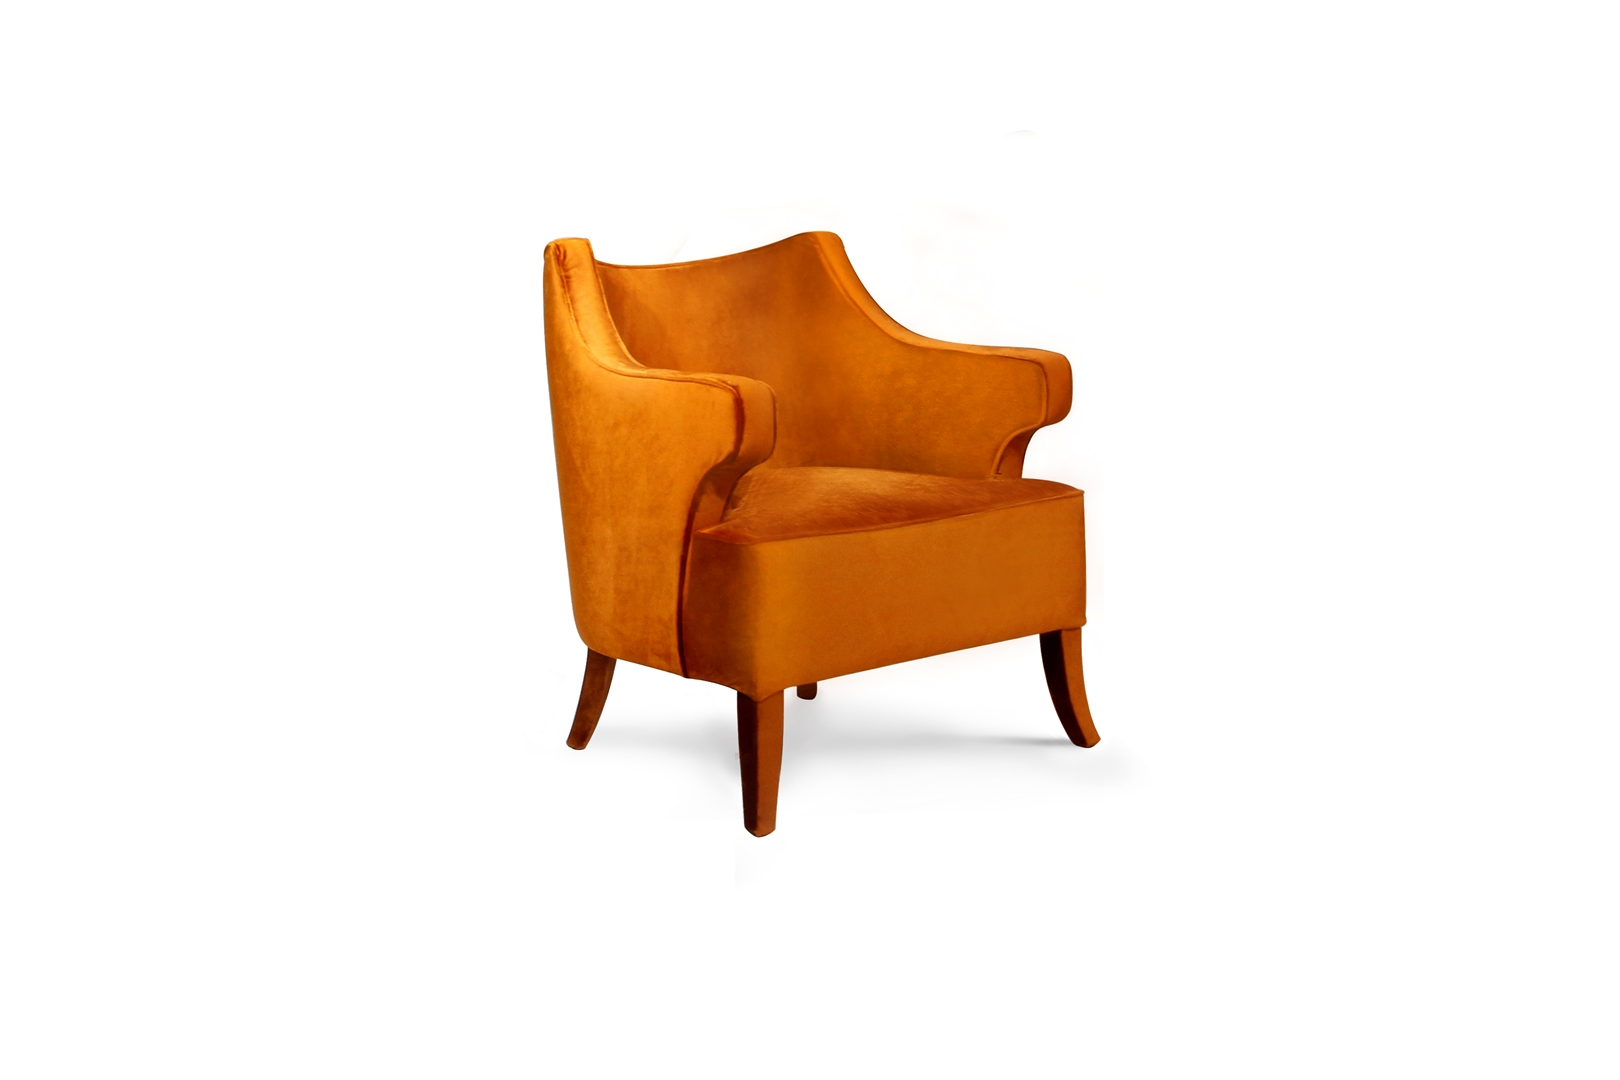 java-armchair-2-HR (Copy)